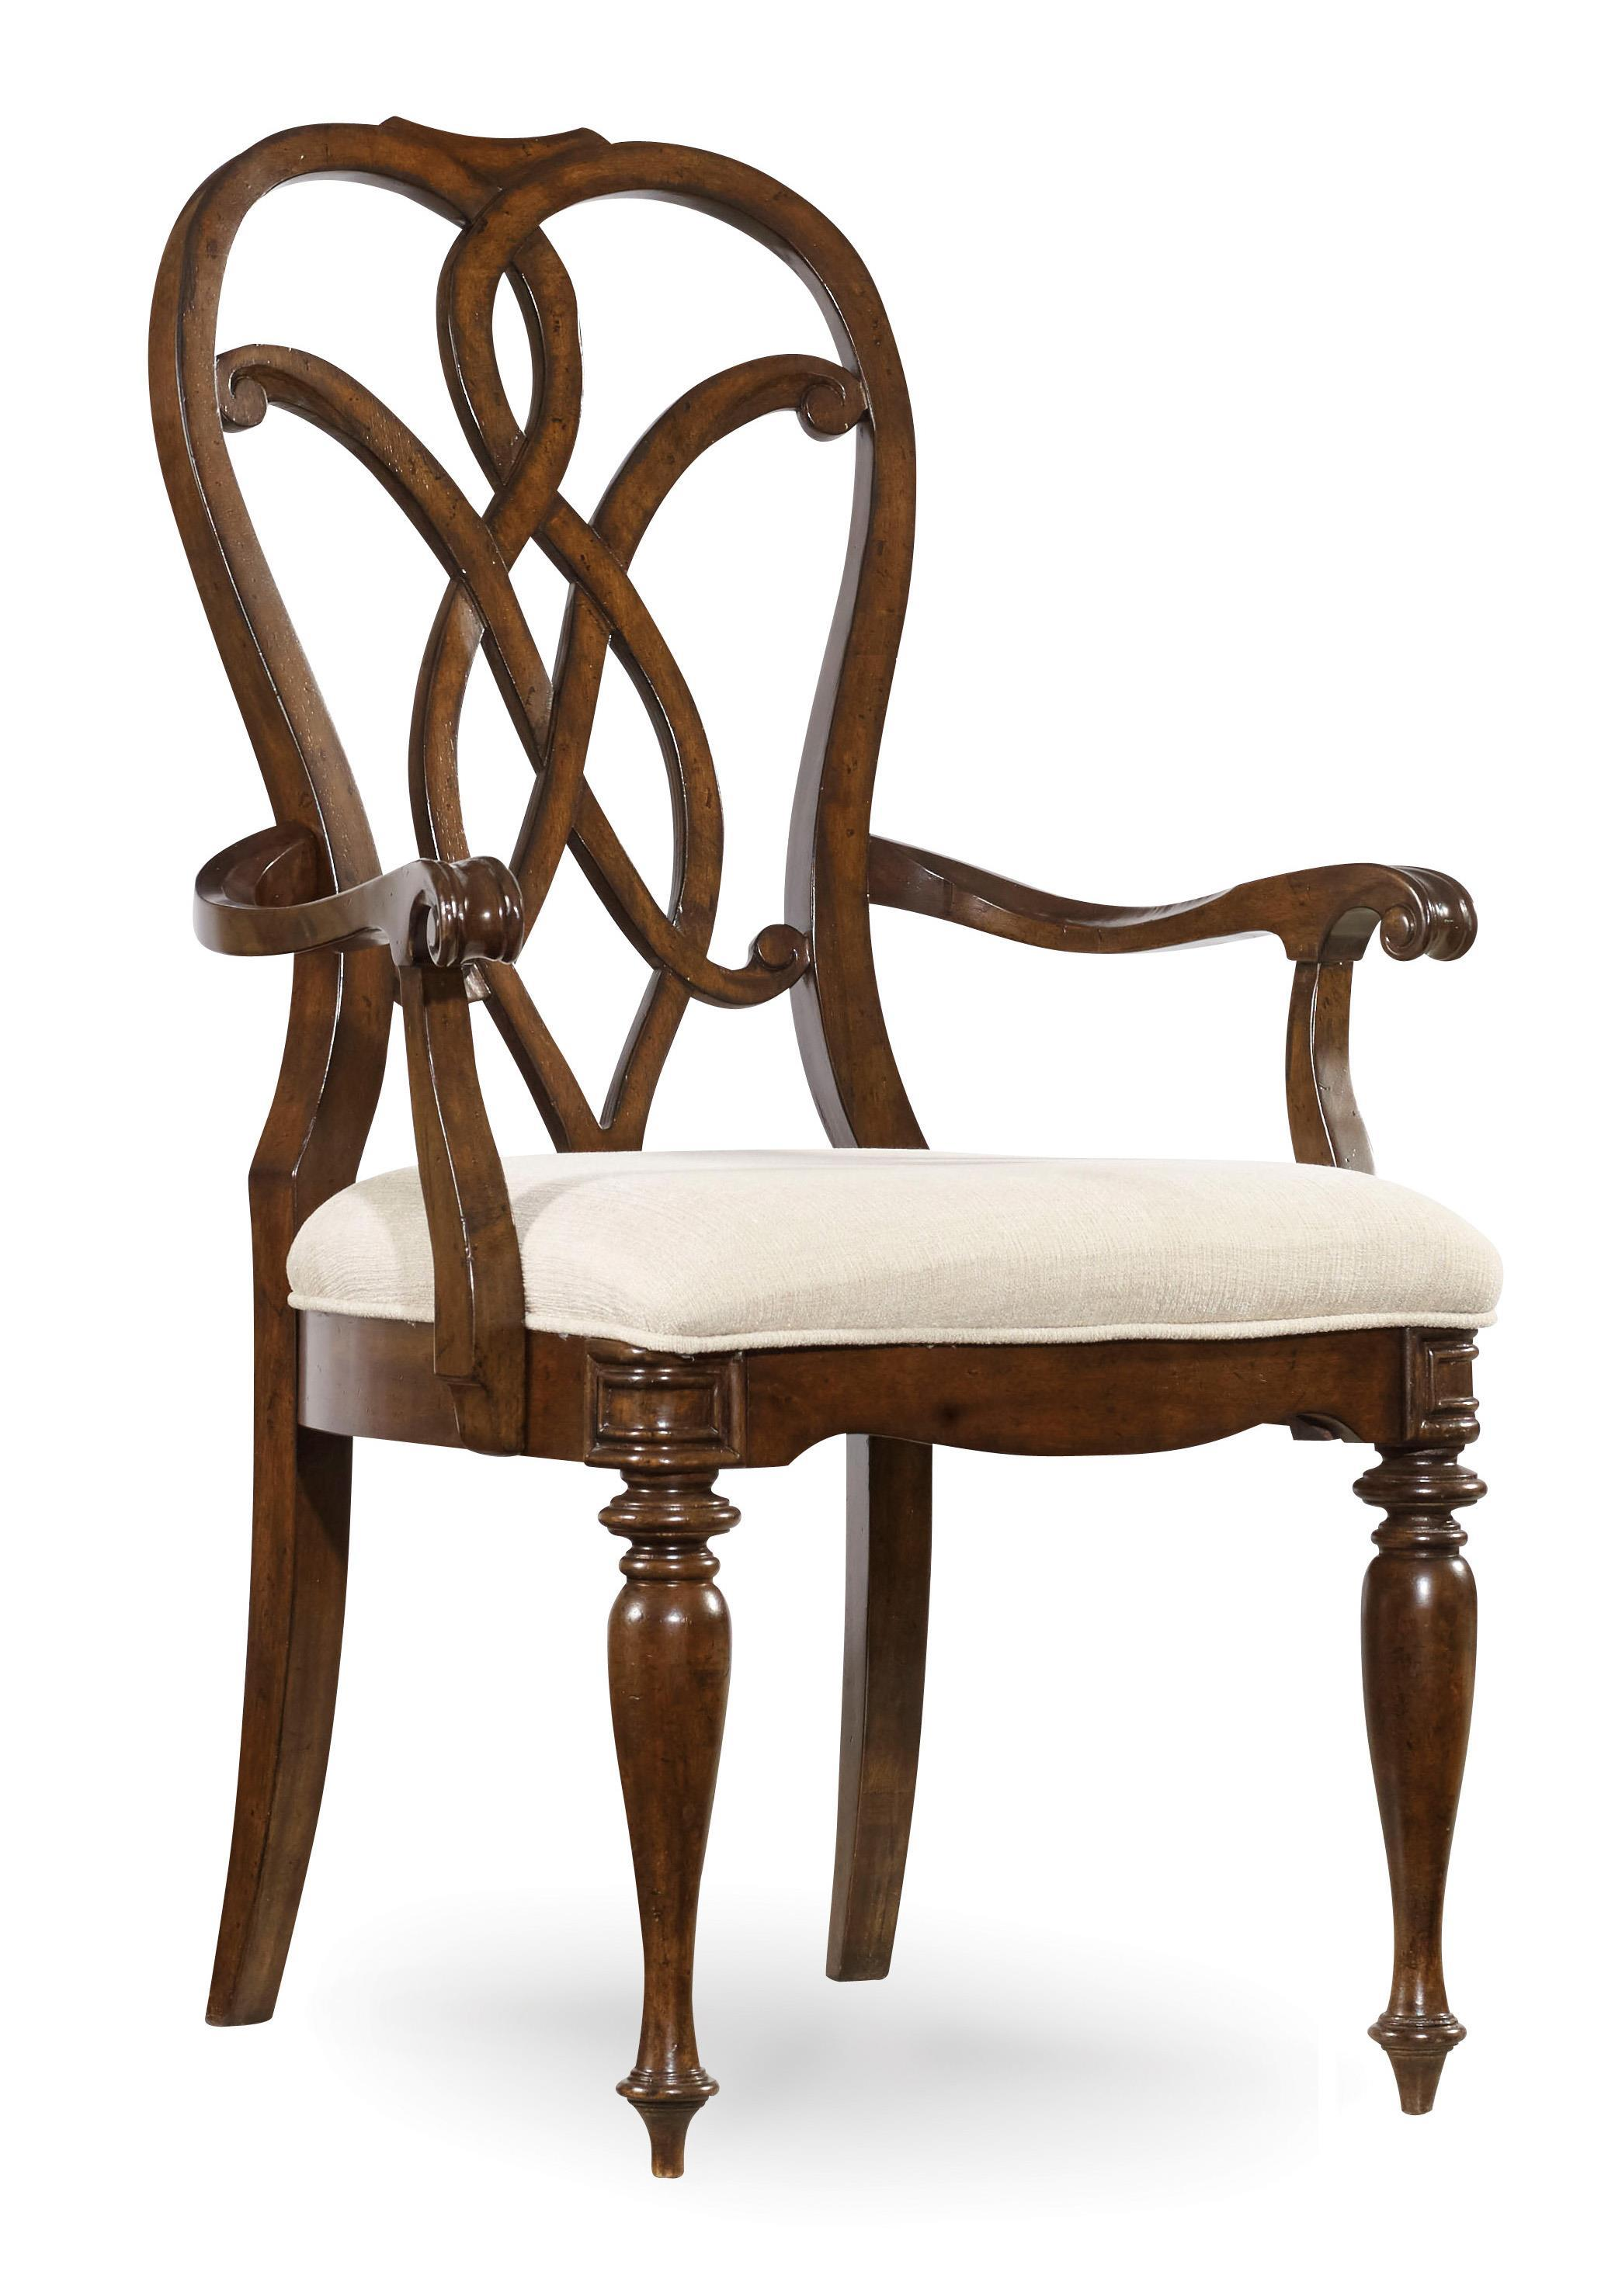 Hooker Furniture Leesburg Splatback Arm Chair - Item Number: 5381-75300